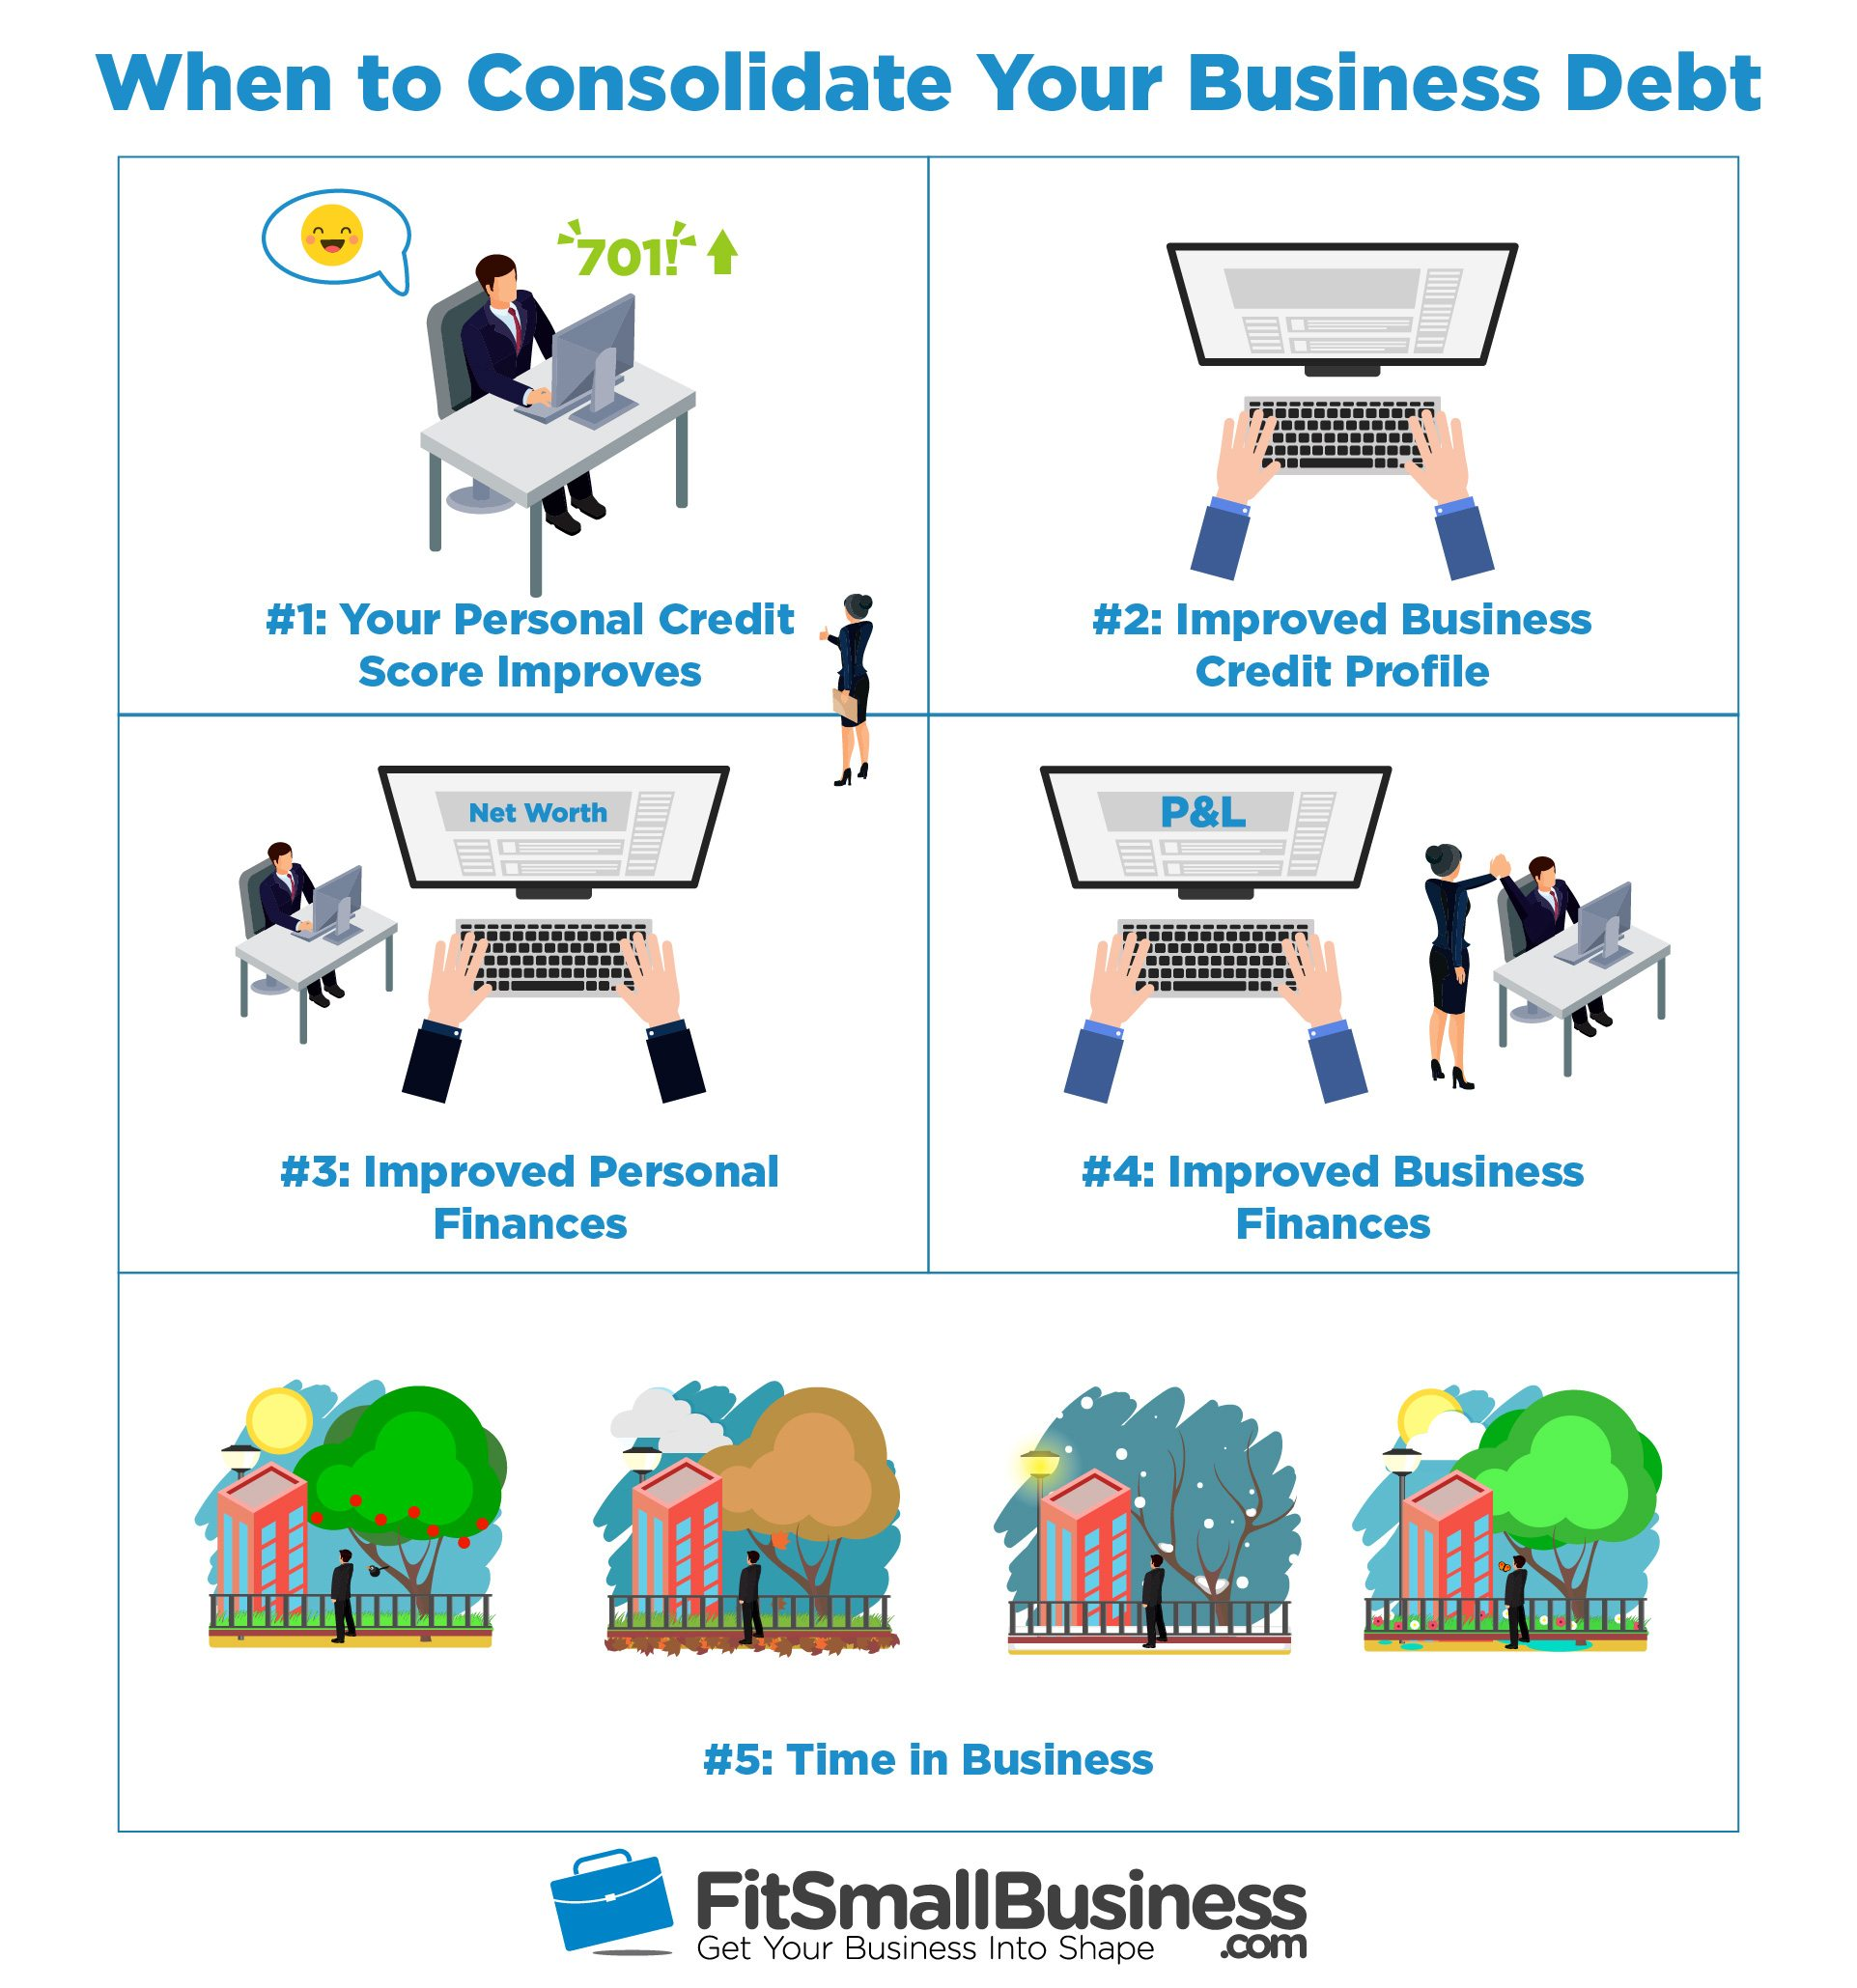 infographic with 5 how to sections on when to consolidate your business debt